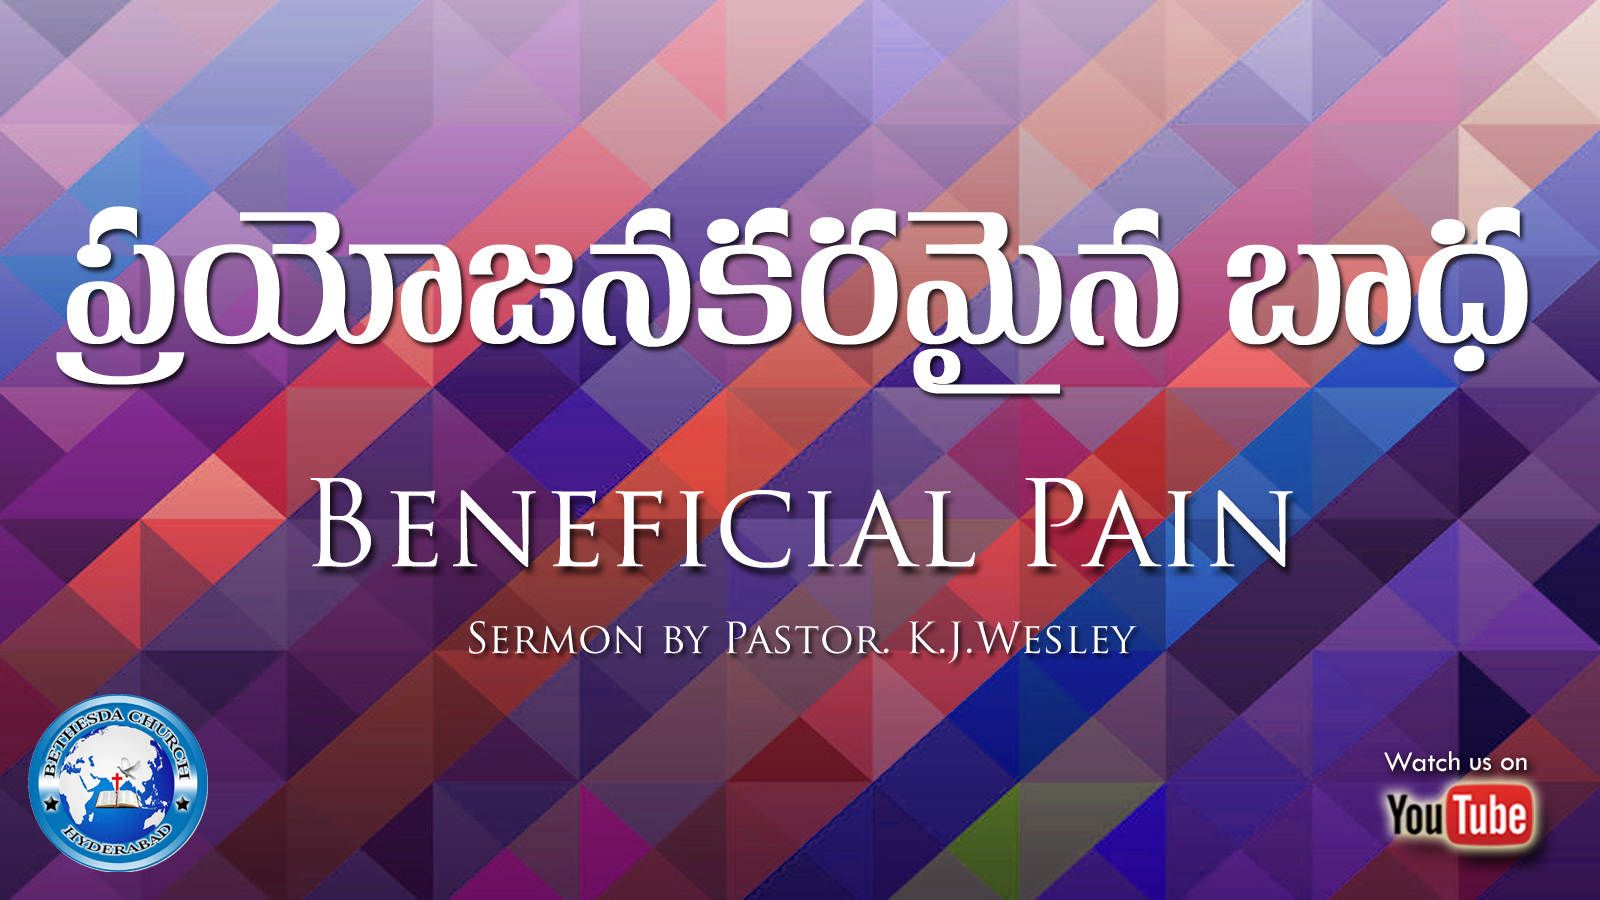 Beneficial Pain (A247)